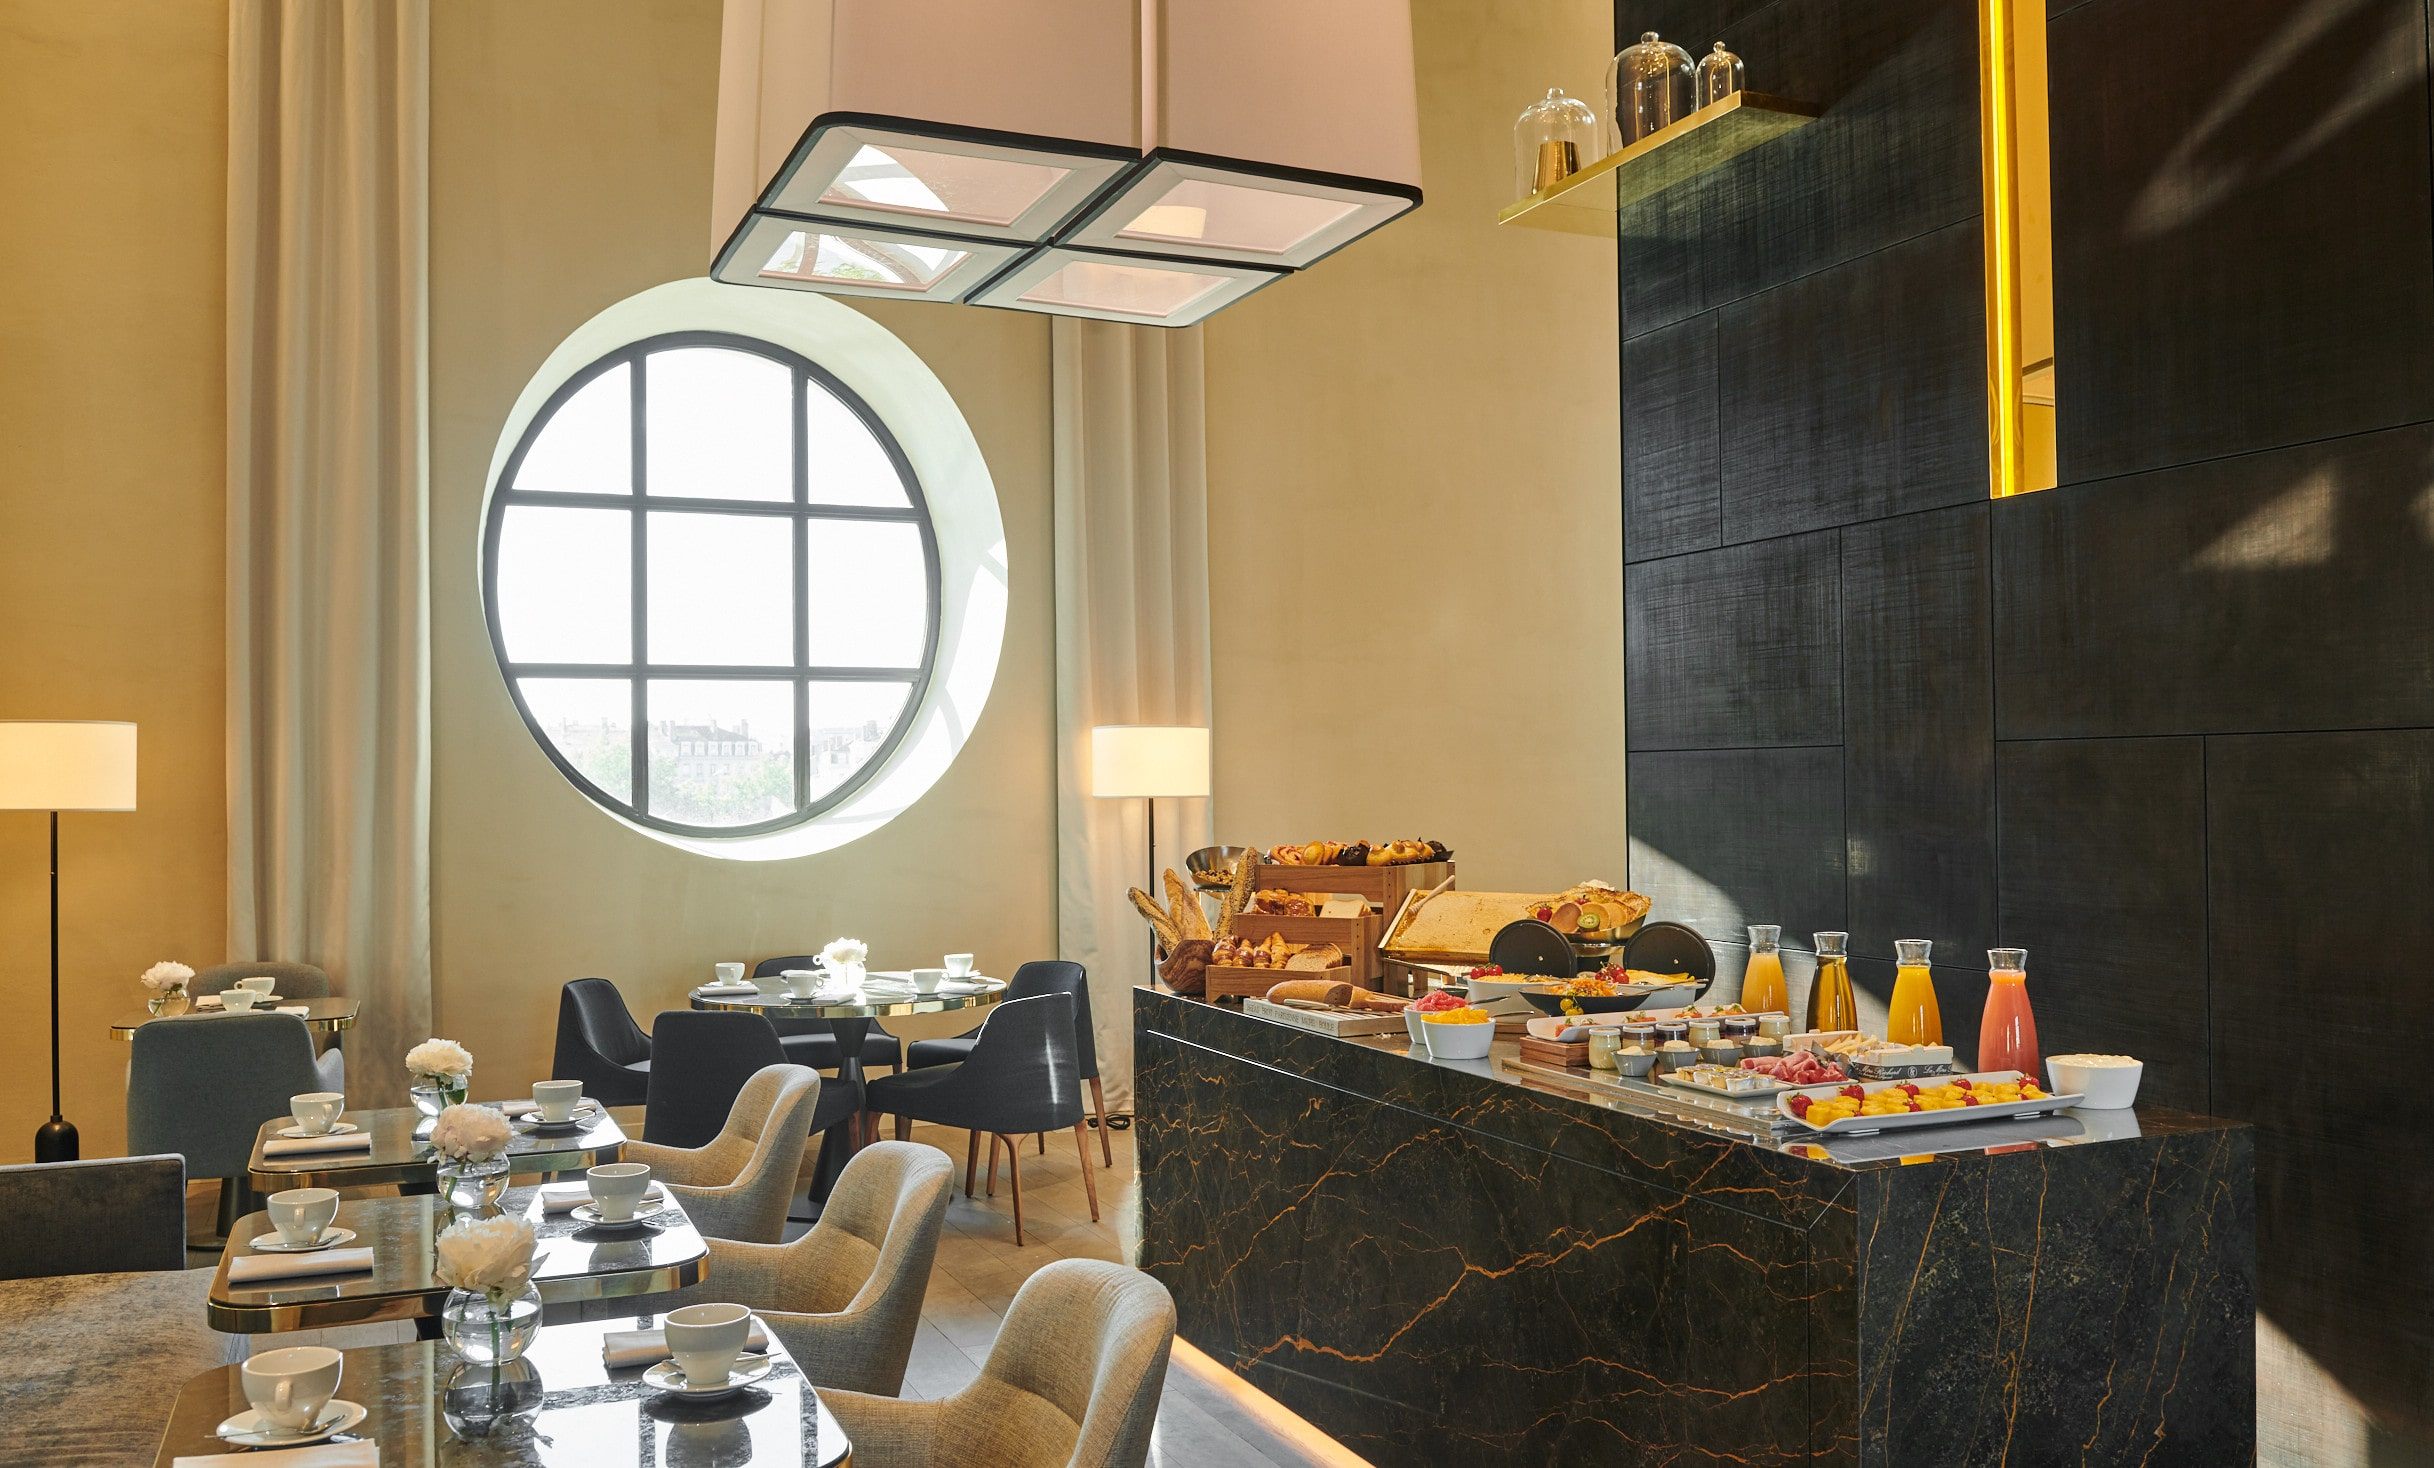 InterContinental Lyon - Hotel Dieu - Club Lounge - breakfast